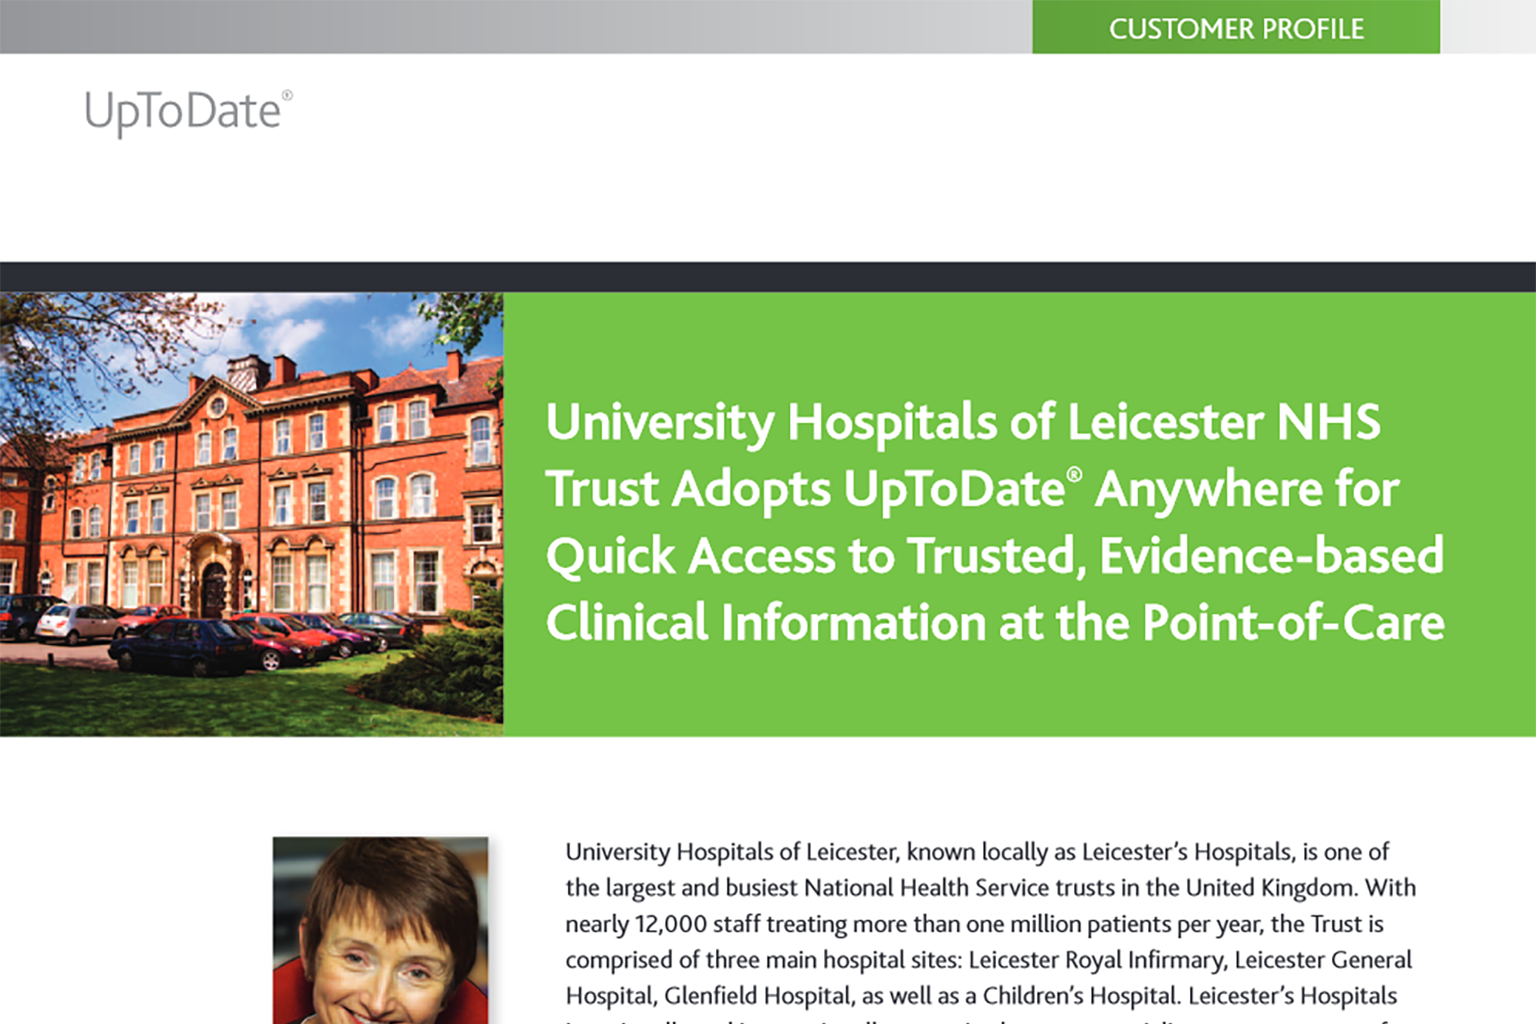 UpToDate Success Story: University Hospitals of Leicester NHS Trust